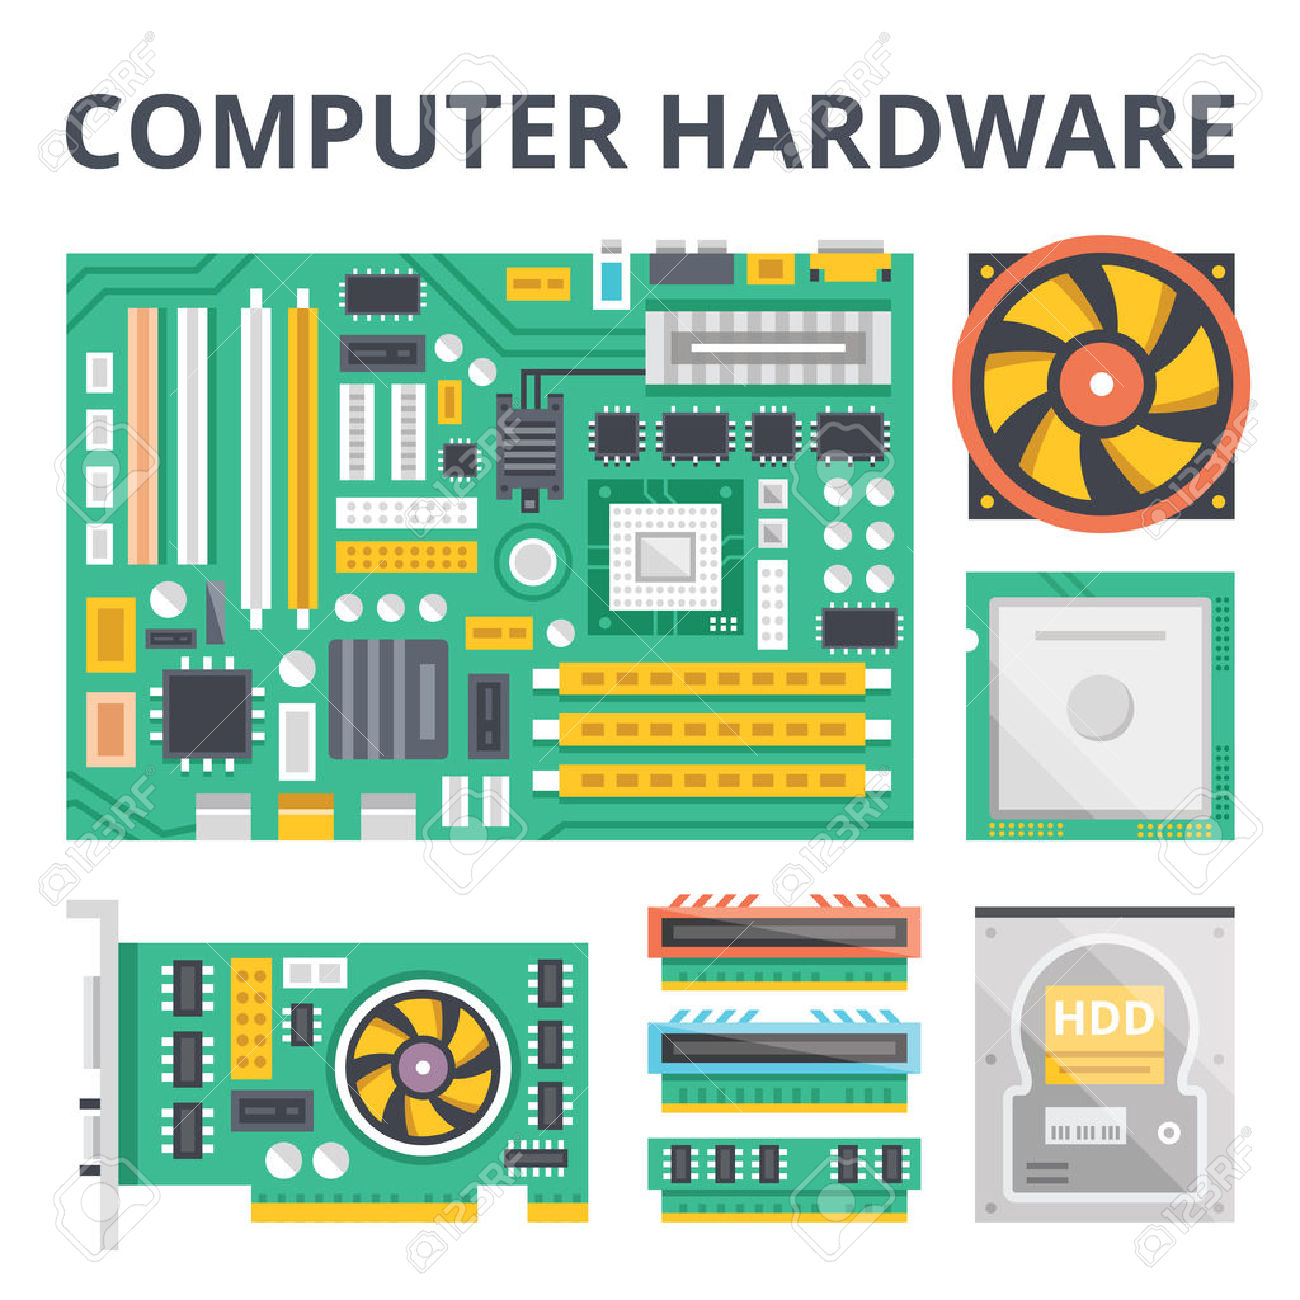 61,961 Computer Hardware Stock Vector Illustration And Royalty.